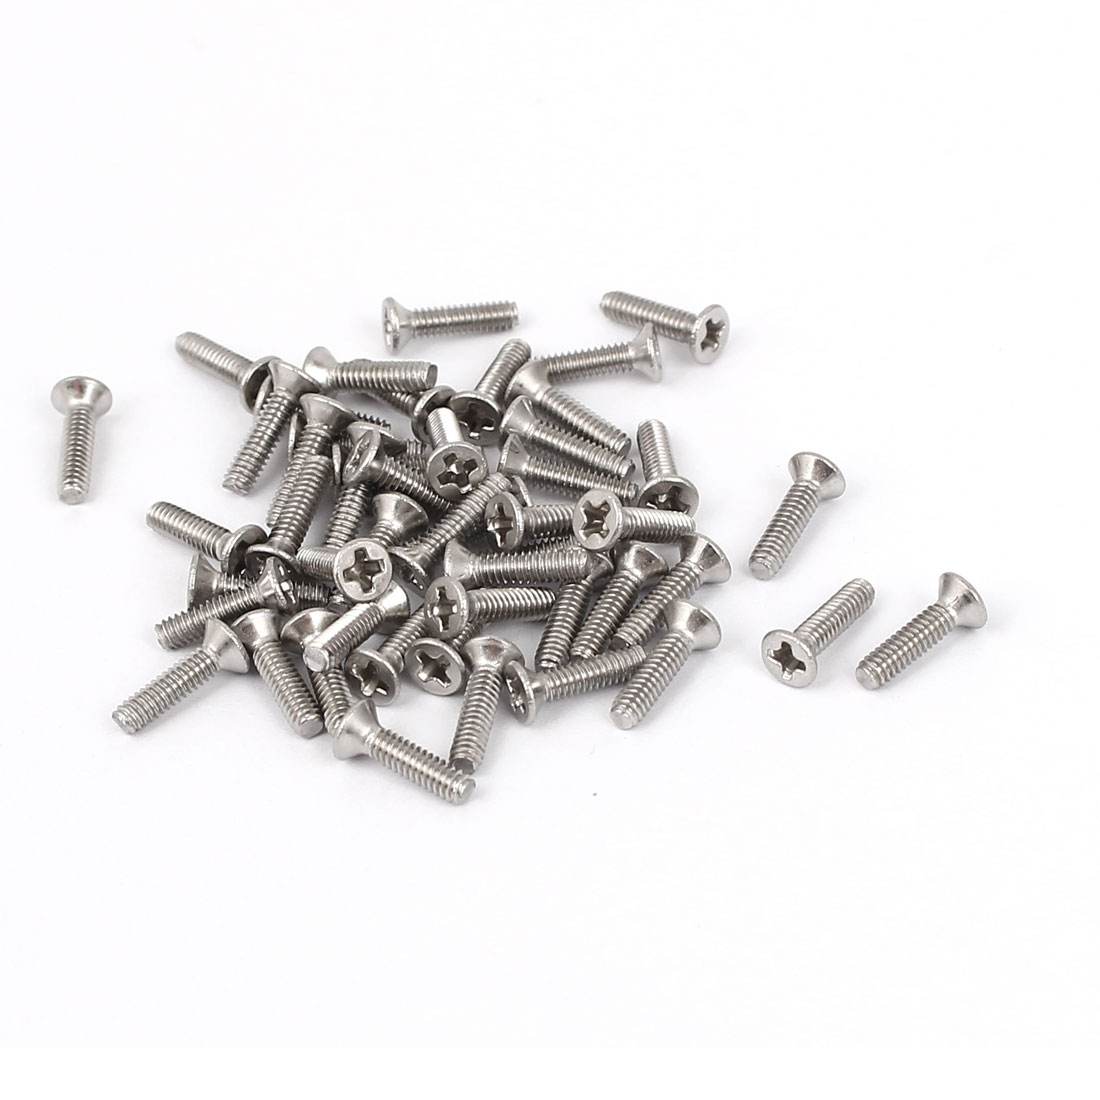 M2x8mm Phillips Flat Countersunk Head Machine Screws Silver Tone 50pcs